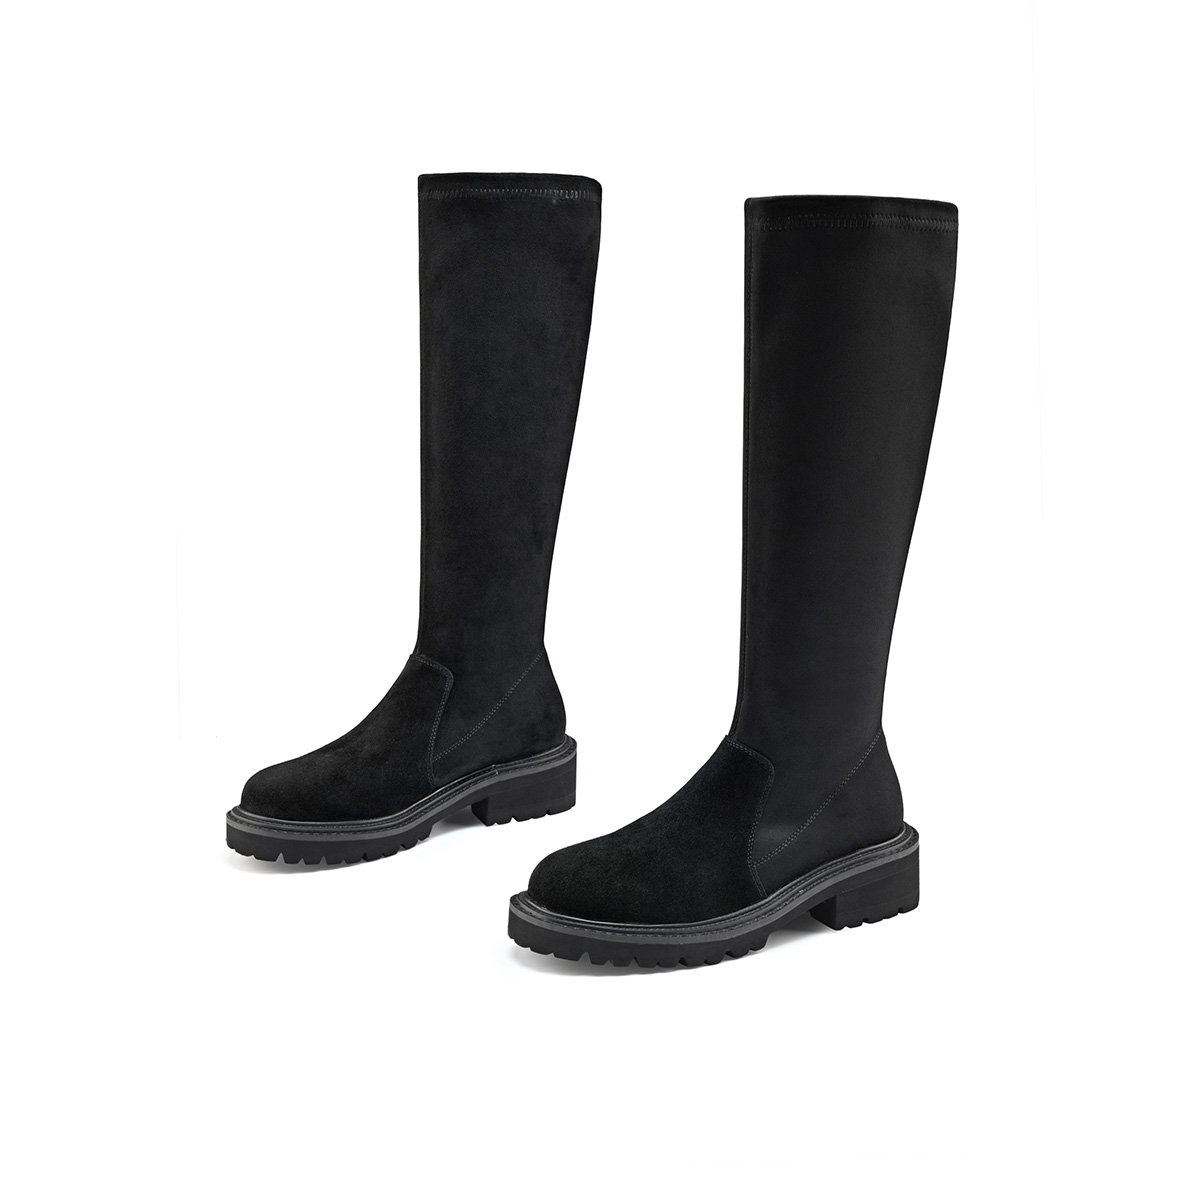 [high boots] the new Martin boots in autumn and winter 2021 are all kinds of womens elastic boots with high barrel and thick bottom